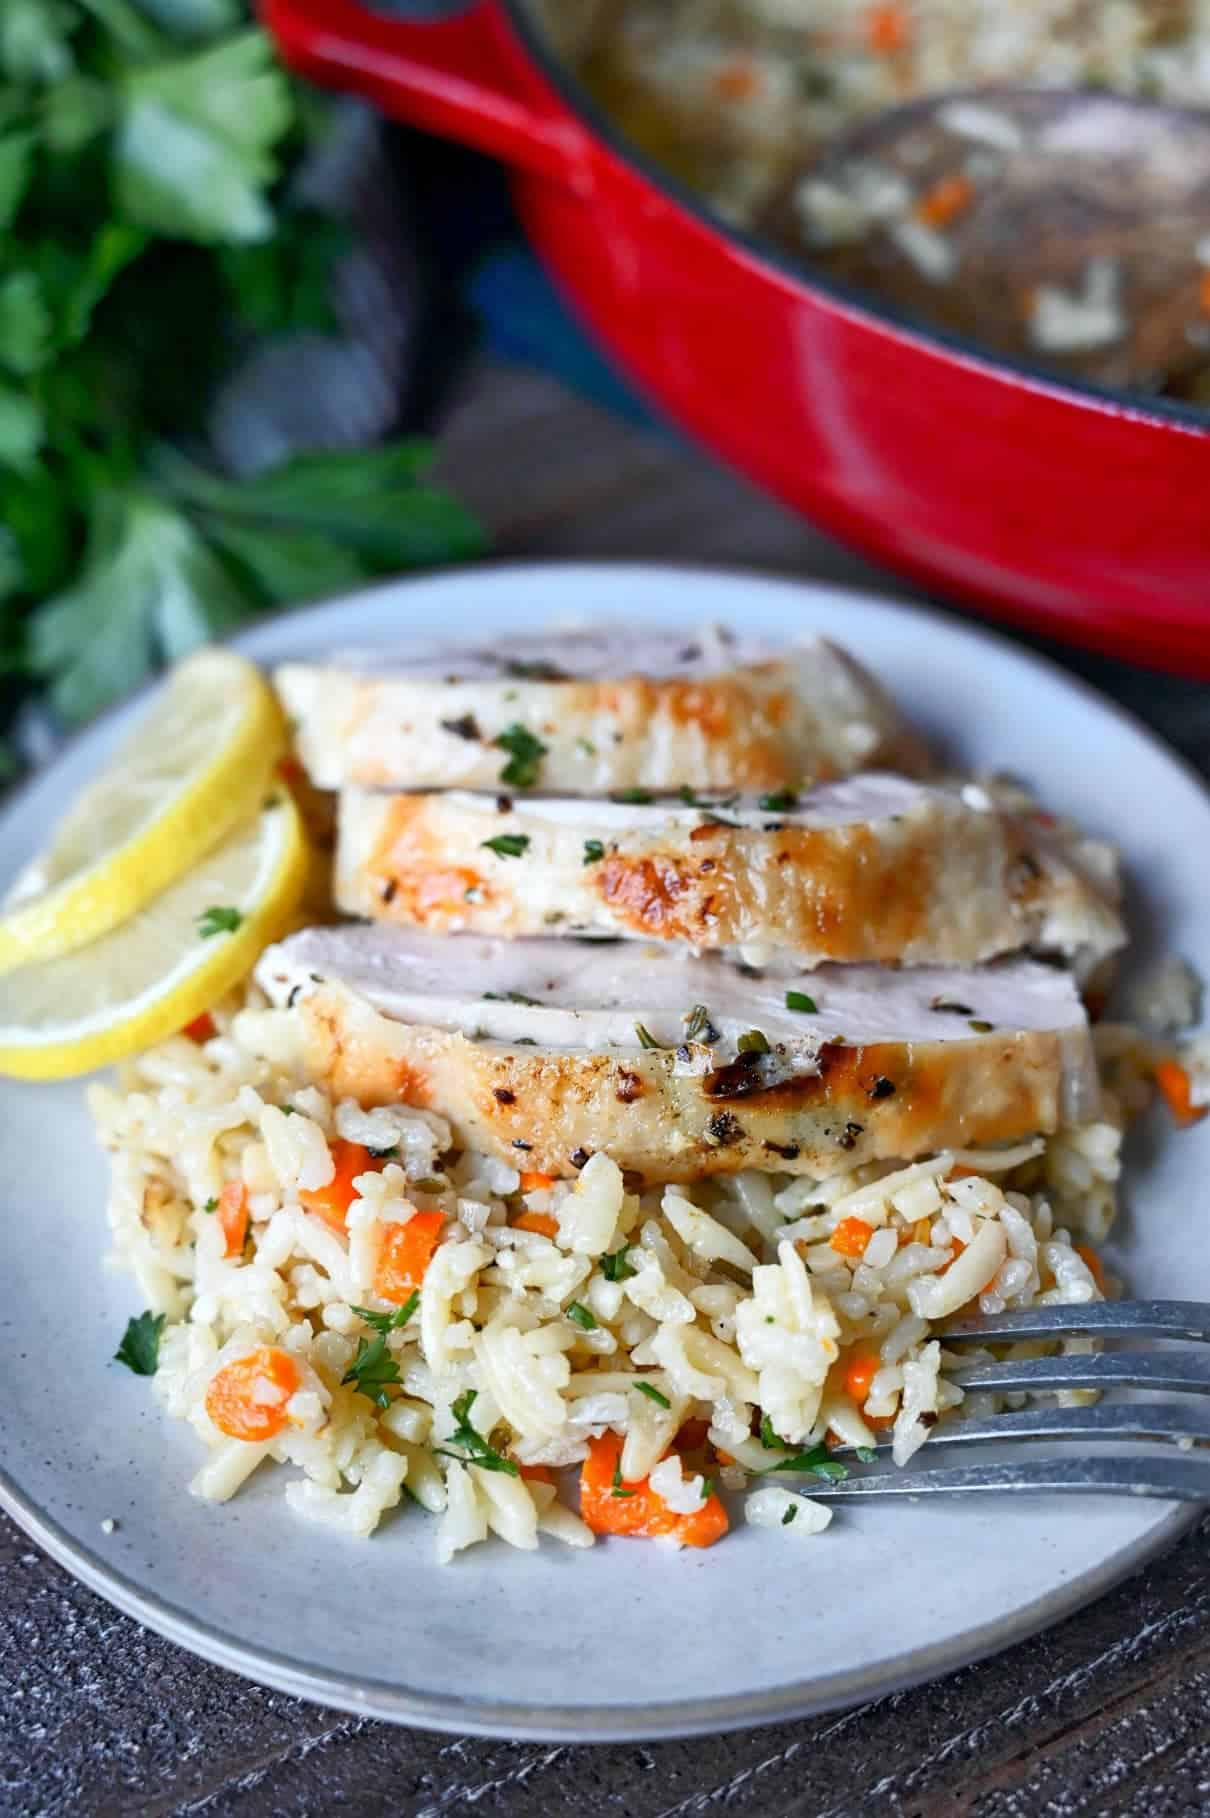 Lemon herb chickn sliced on a scoop of rice pilaf on a white plate.